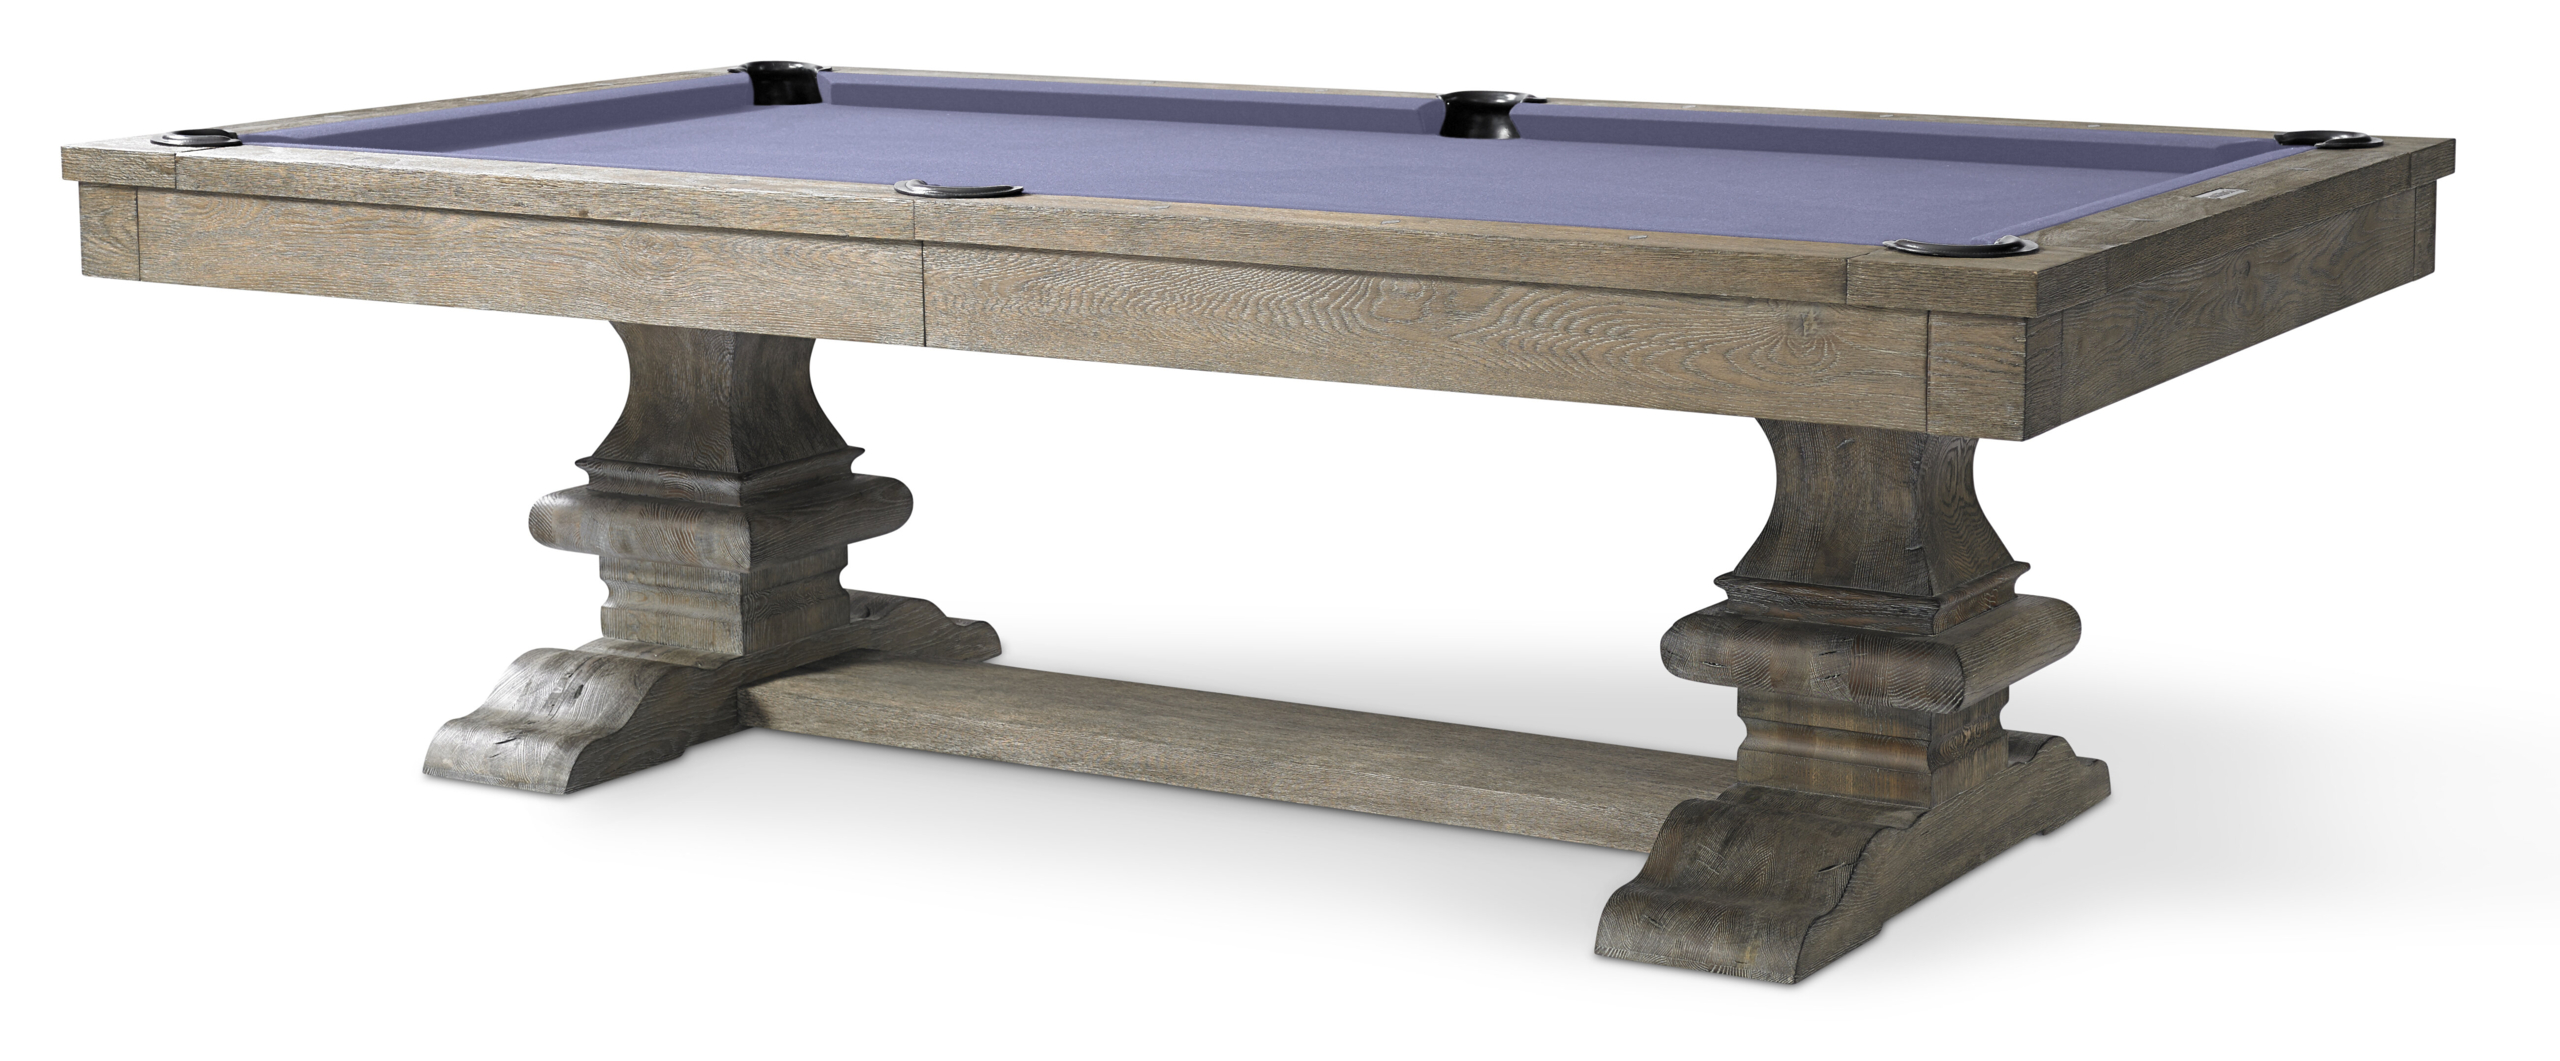 Tremendous Rich Blue M Simba Usa 7Ft Pool Table Billiard Blue Became A Pdpeps Interior Chair Design Pdpepsorg